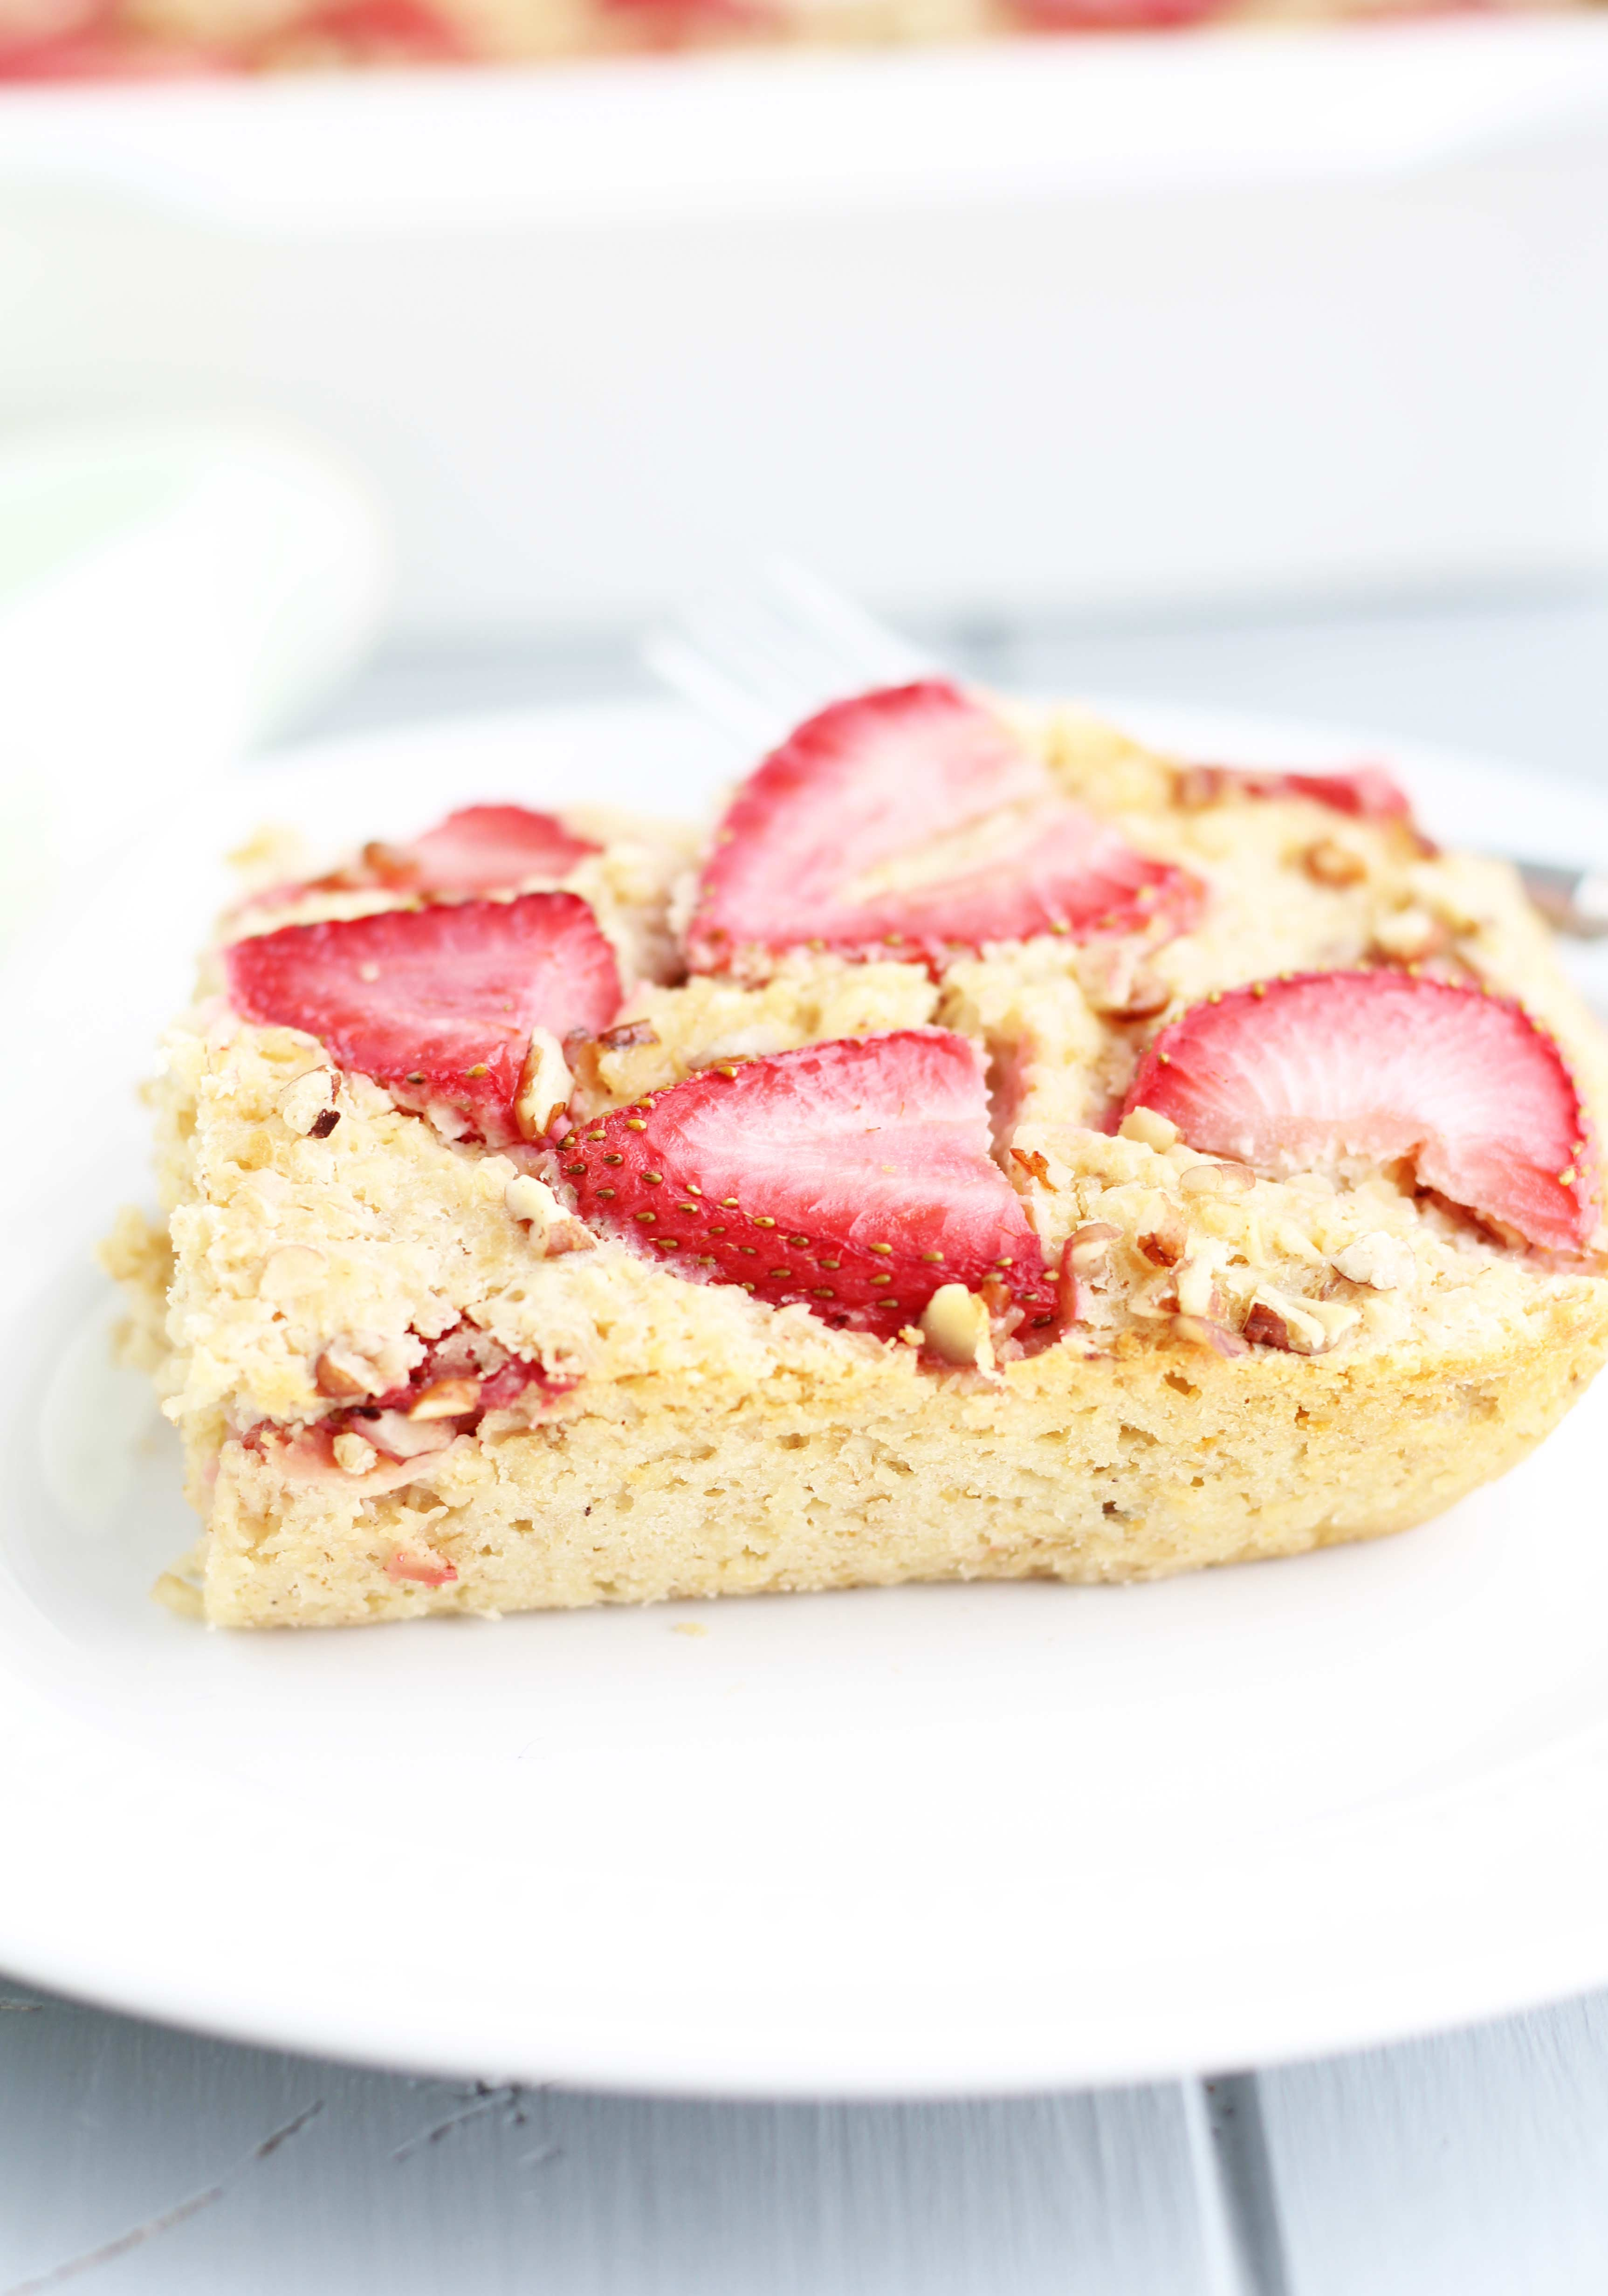 Strawberries-and-Cream-Baked-Oatmeal